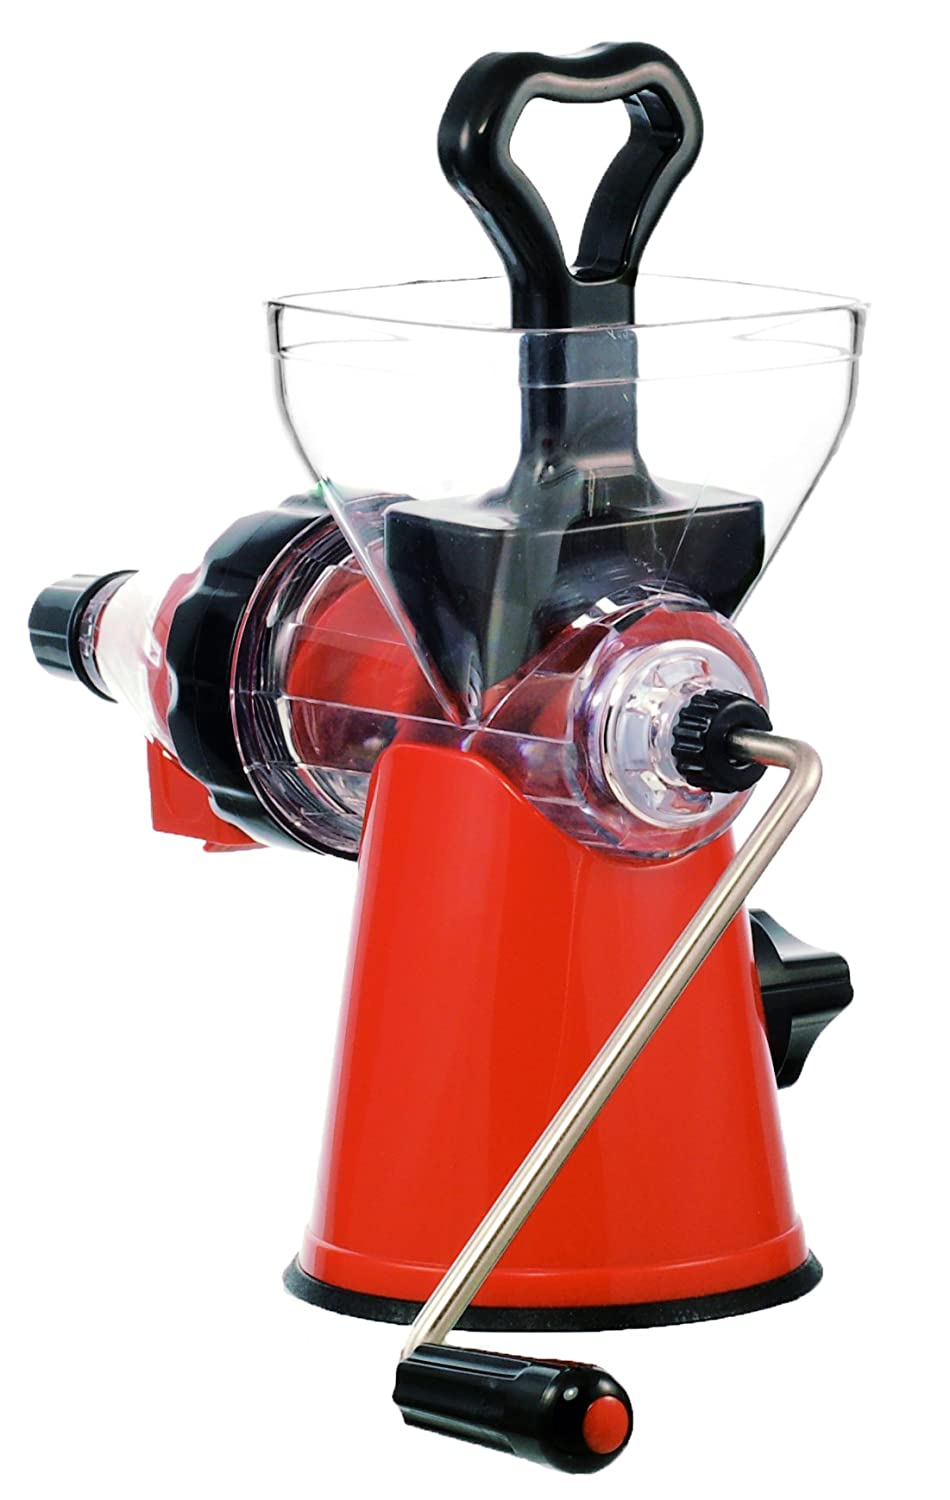 kogan cold press juicer manual